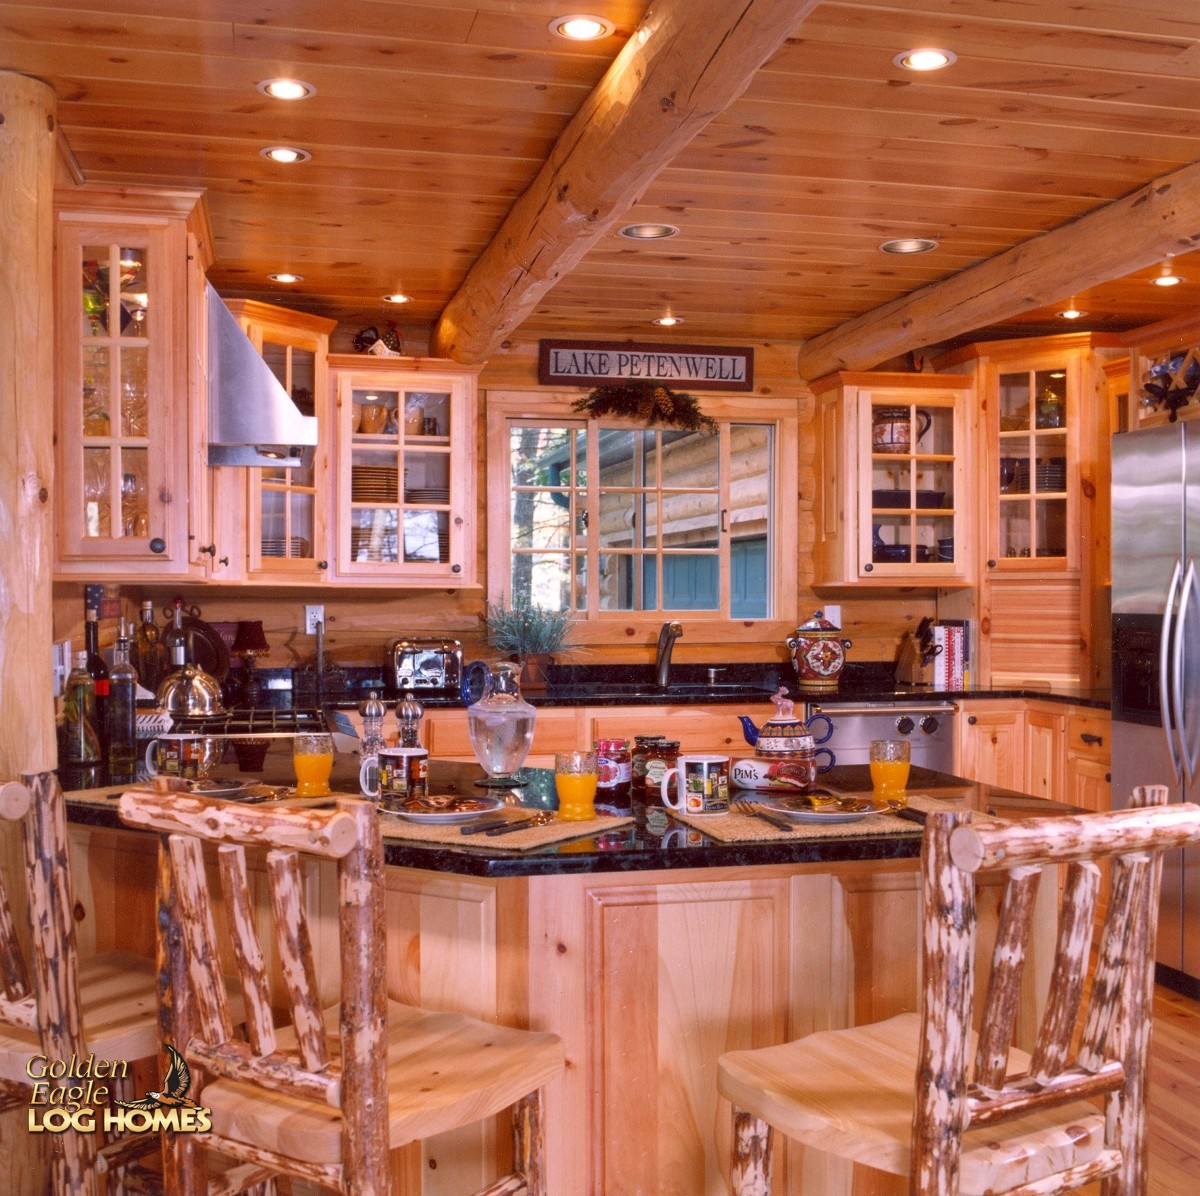 Lake Luxury Kitchens: Golden Eagle Log And Timber Homes: Log Home / Cabin